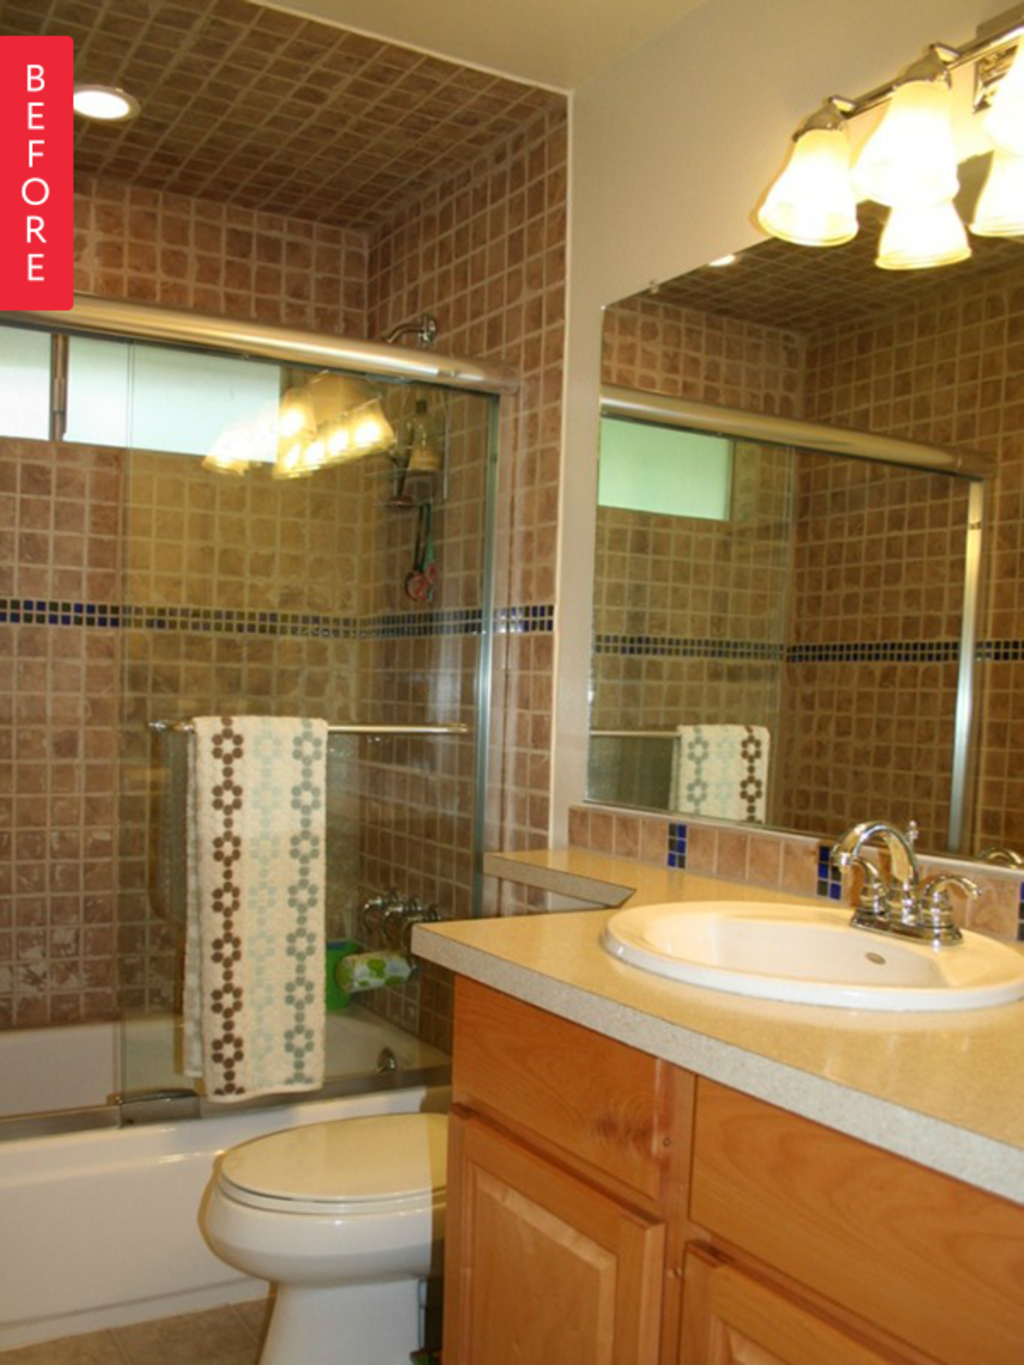 Before & After: A Brown Bathroom, Fantastically Refinished